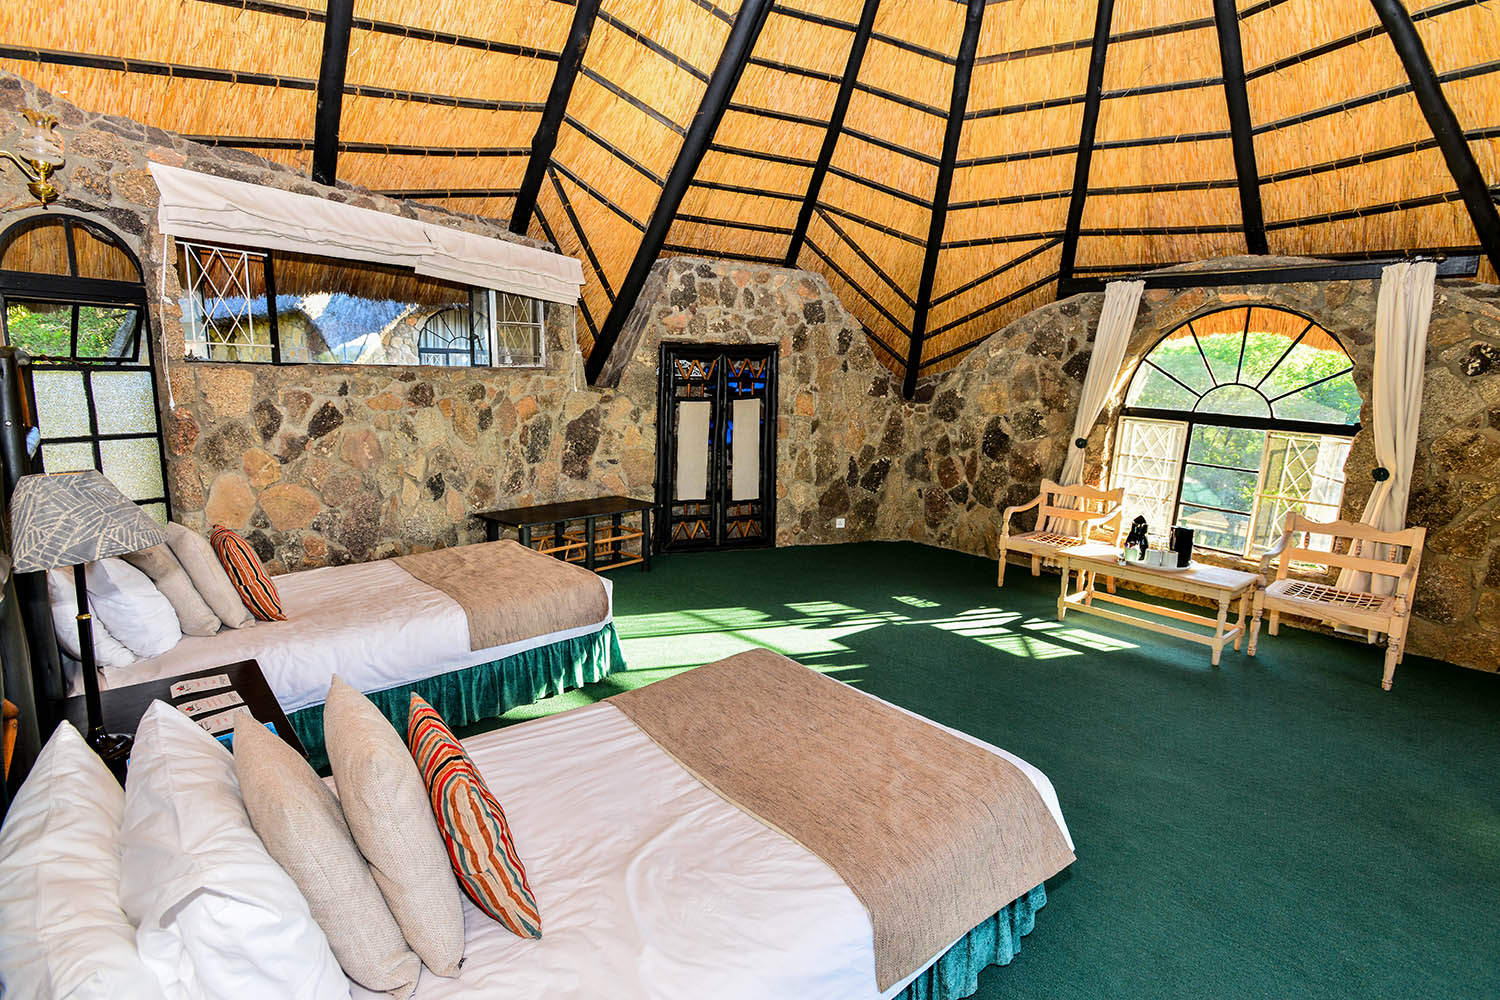 matobo hills lodge zimbabwe-lodges-accommodation-matopos-matobo-national-park-africa-beds